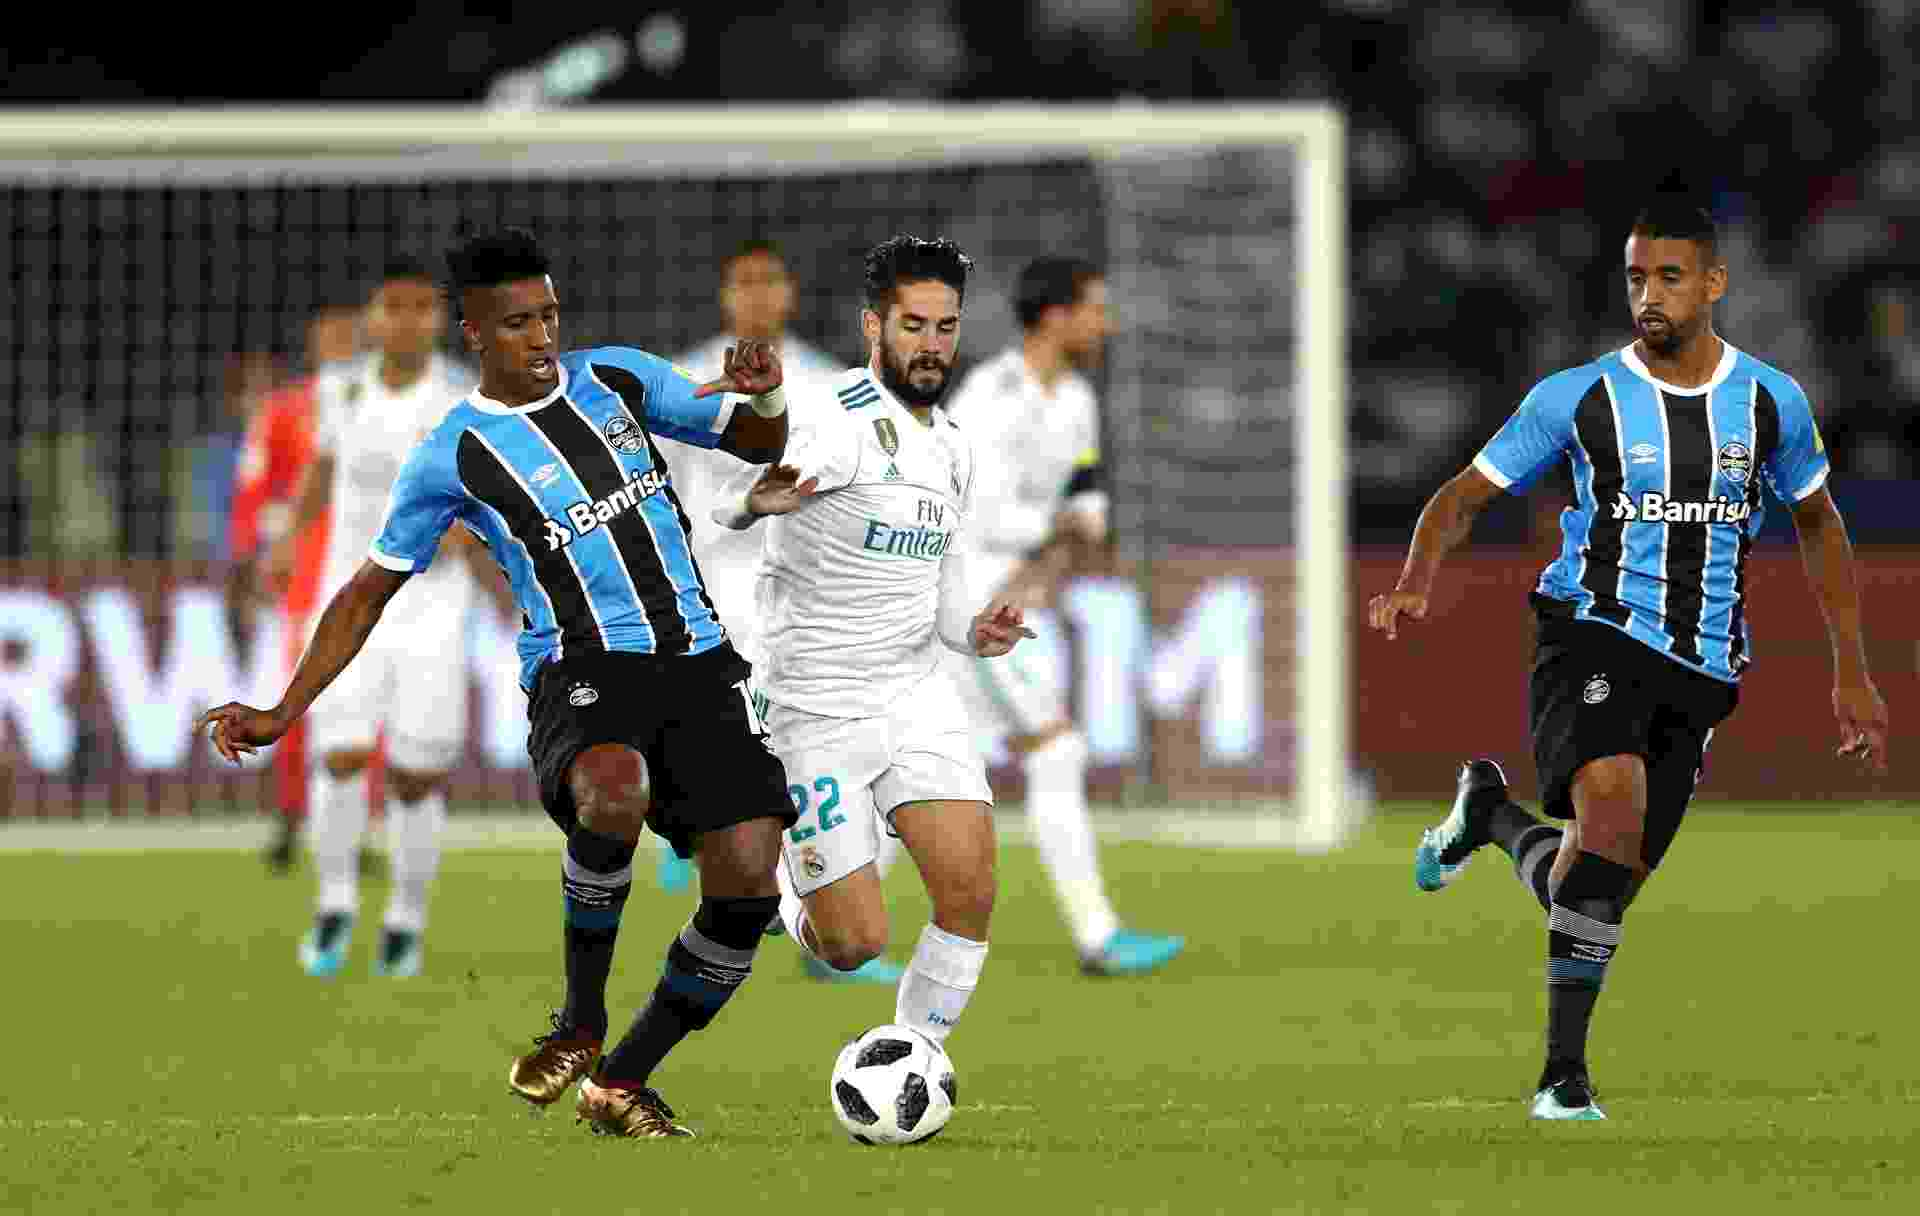 Cortez e Isco disputam lance na final do Mundial entre Grêmio e Real Madrid - François Nel/Getty Images